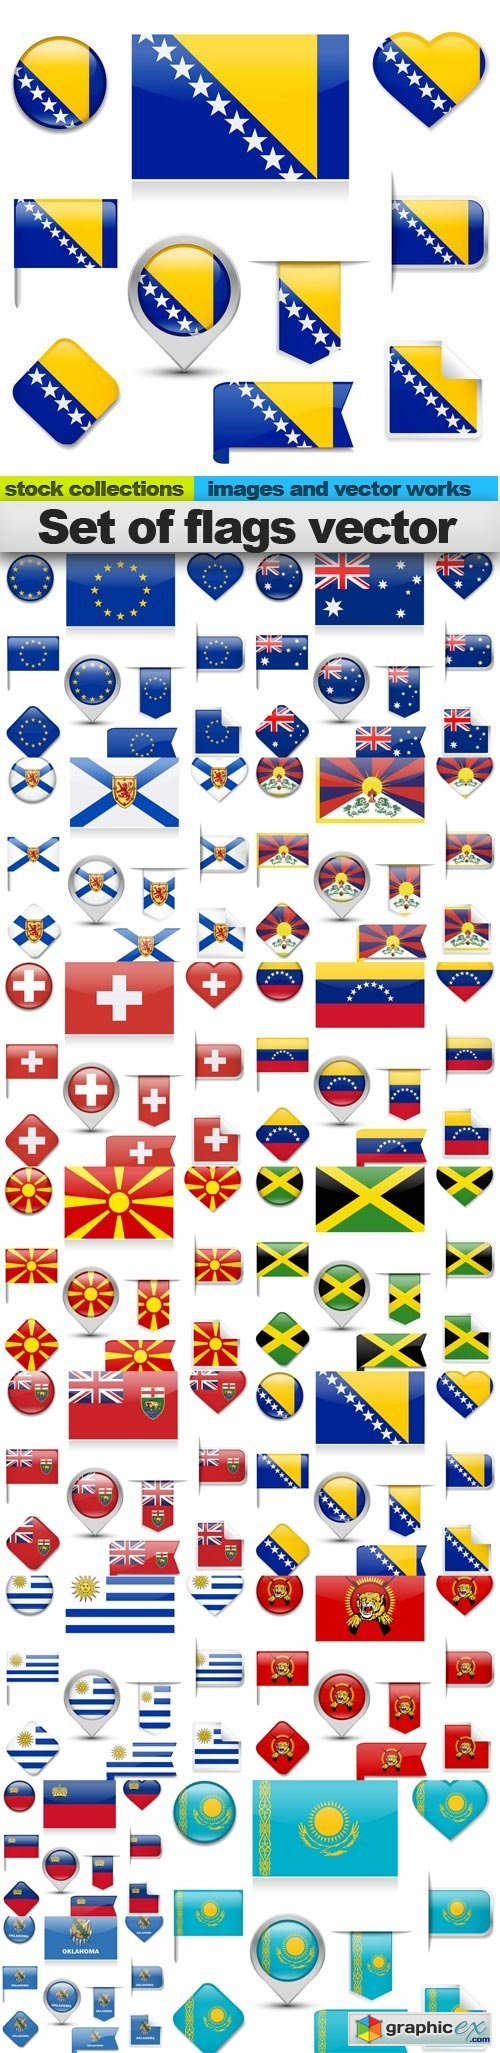 Set of flags vector, 15 x EPS